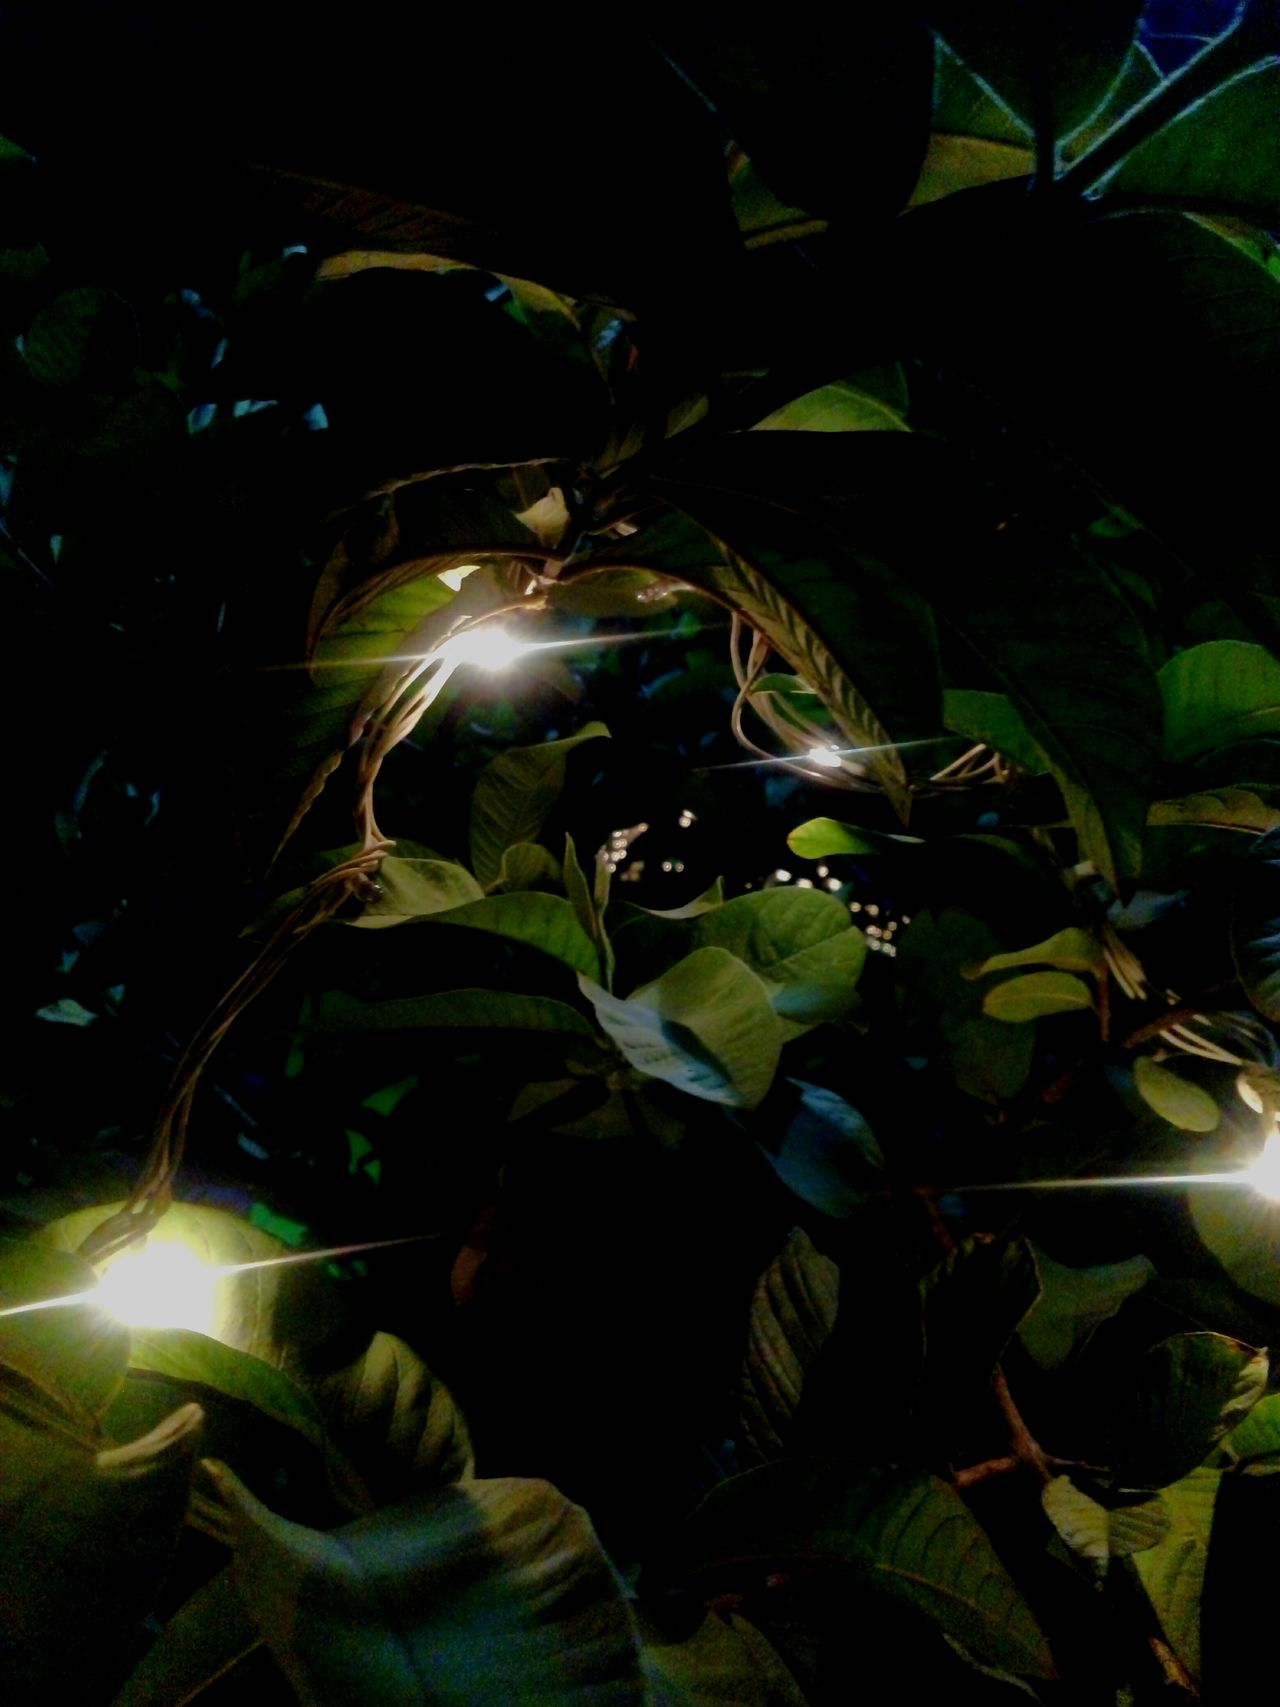 Backgrounds Beauty In Nature Black Background Close-up Full Frame Green Color Illuminated Leaf Nature Night No People Outdoors